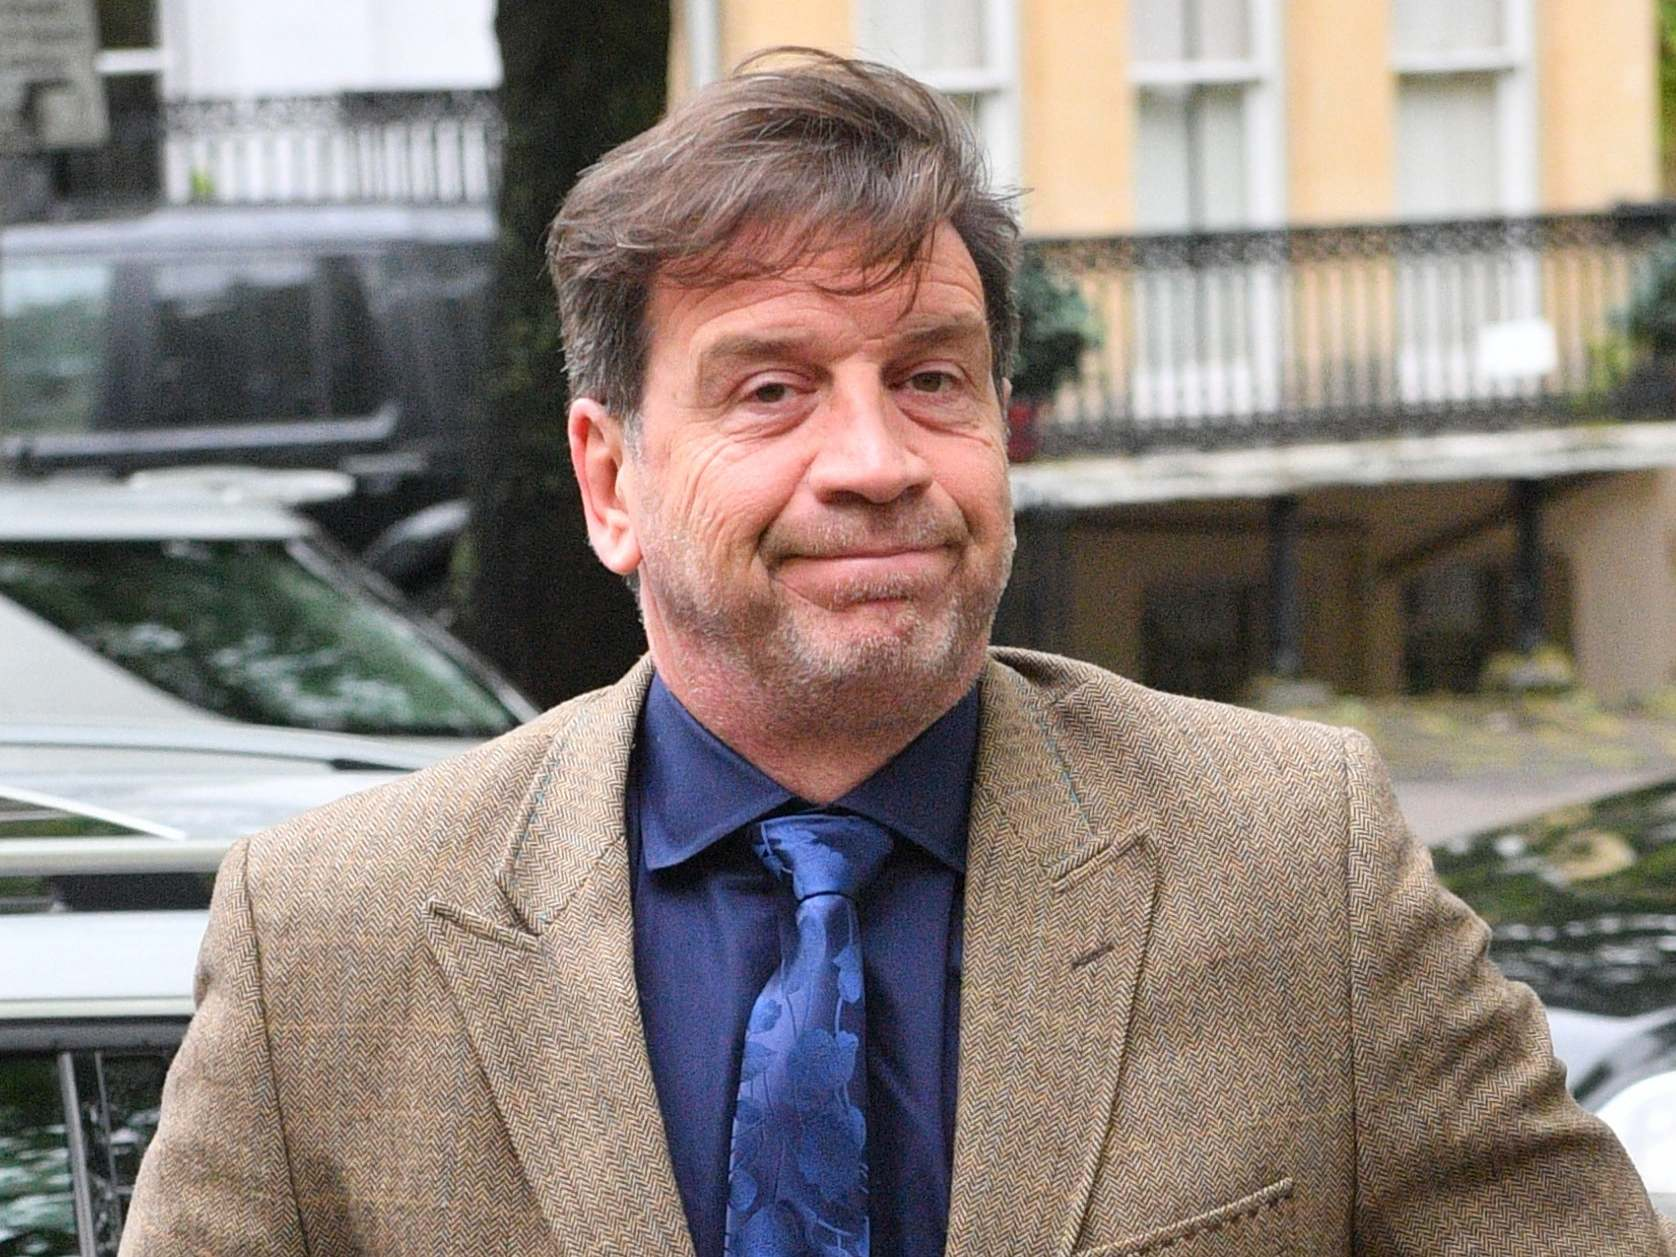 Nick Knowles: BBC host banned from driving for speeding while on phone, before asking judge if he can drive home